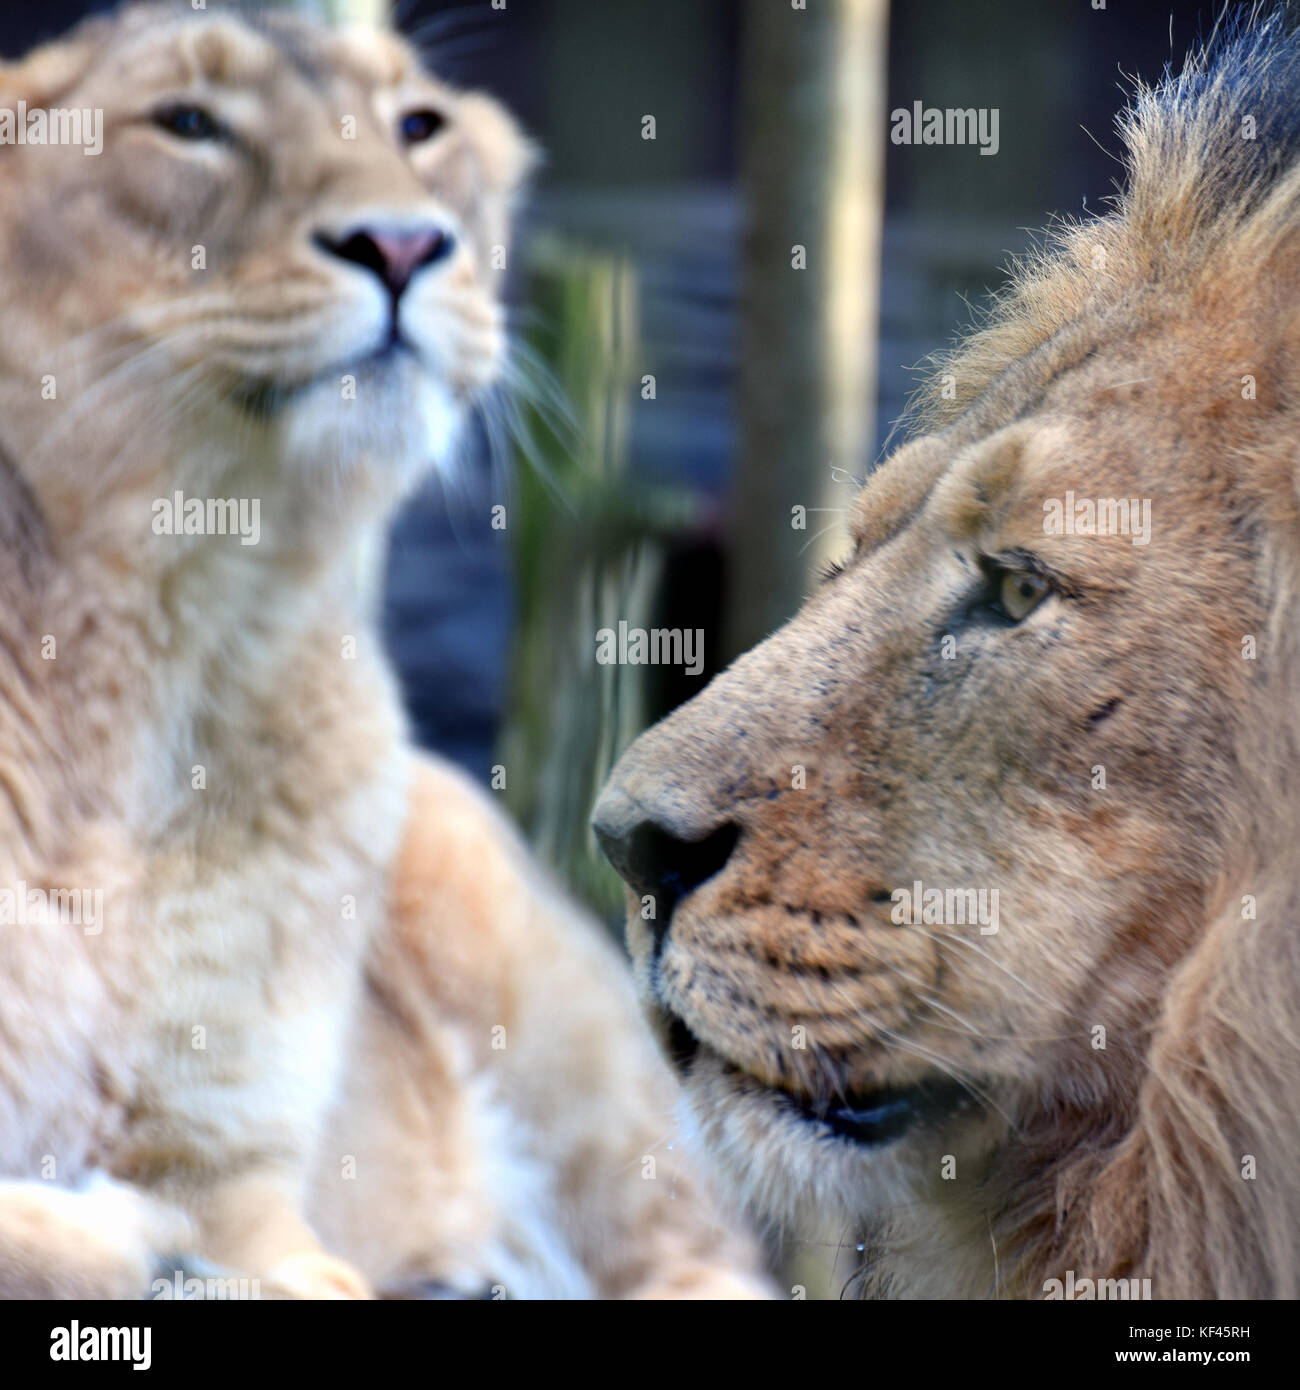 Lion and lioness. Asiatic lions portrait. Male on foreground side view and female on background. - Stock Image